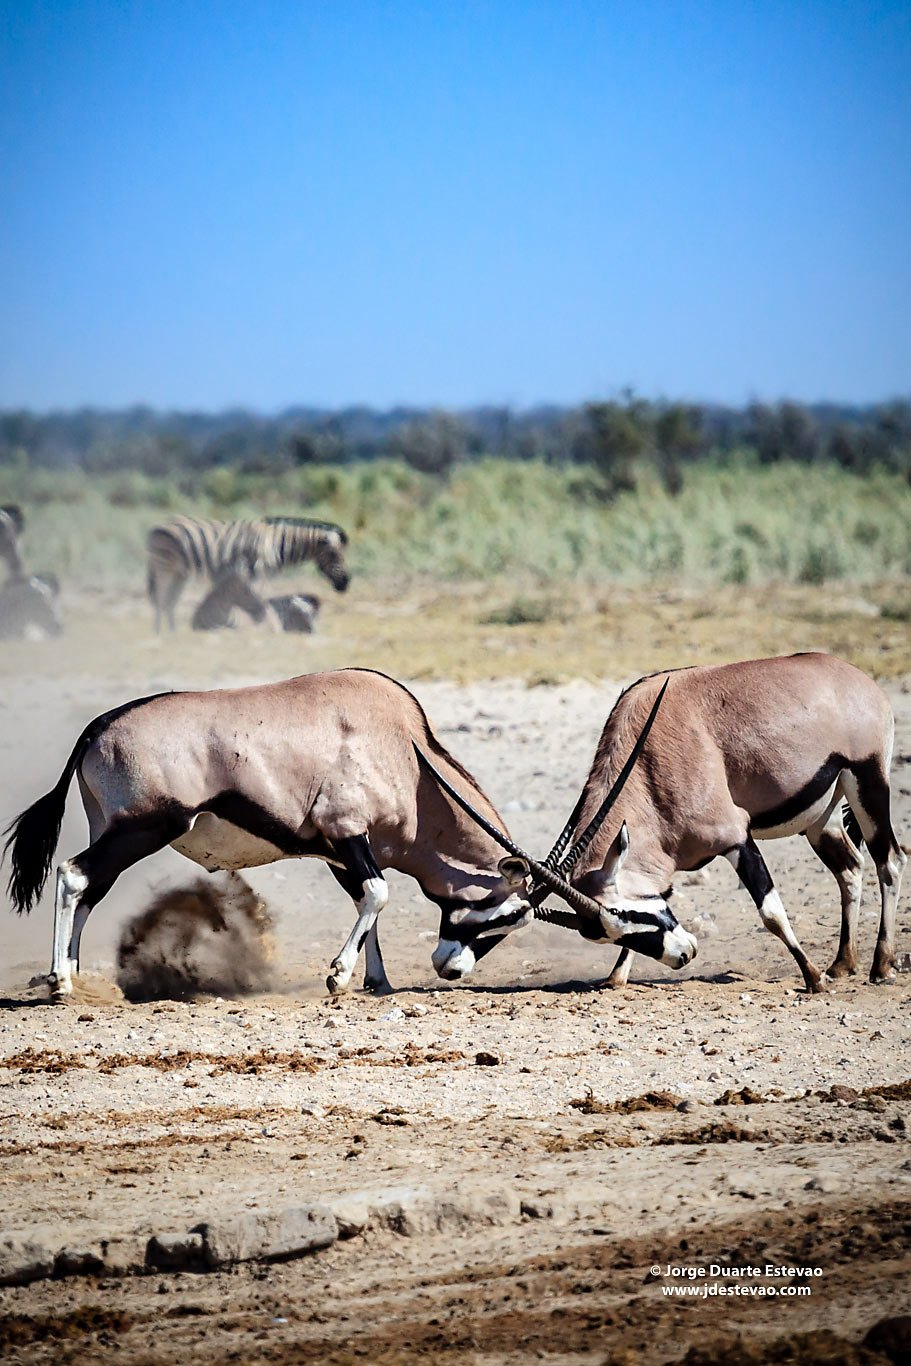 gemsbok fight Etosha National Park Namibia zebra background